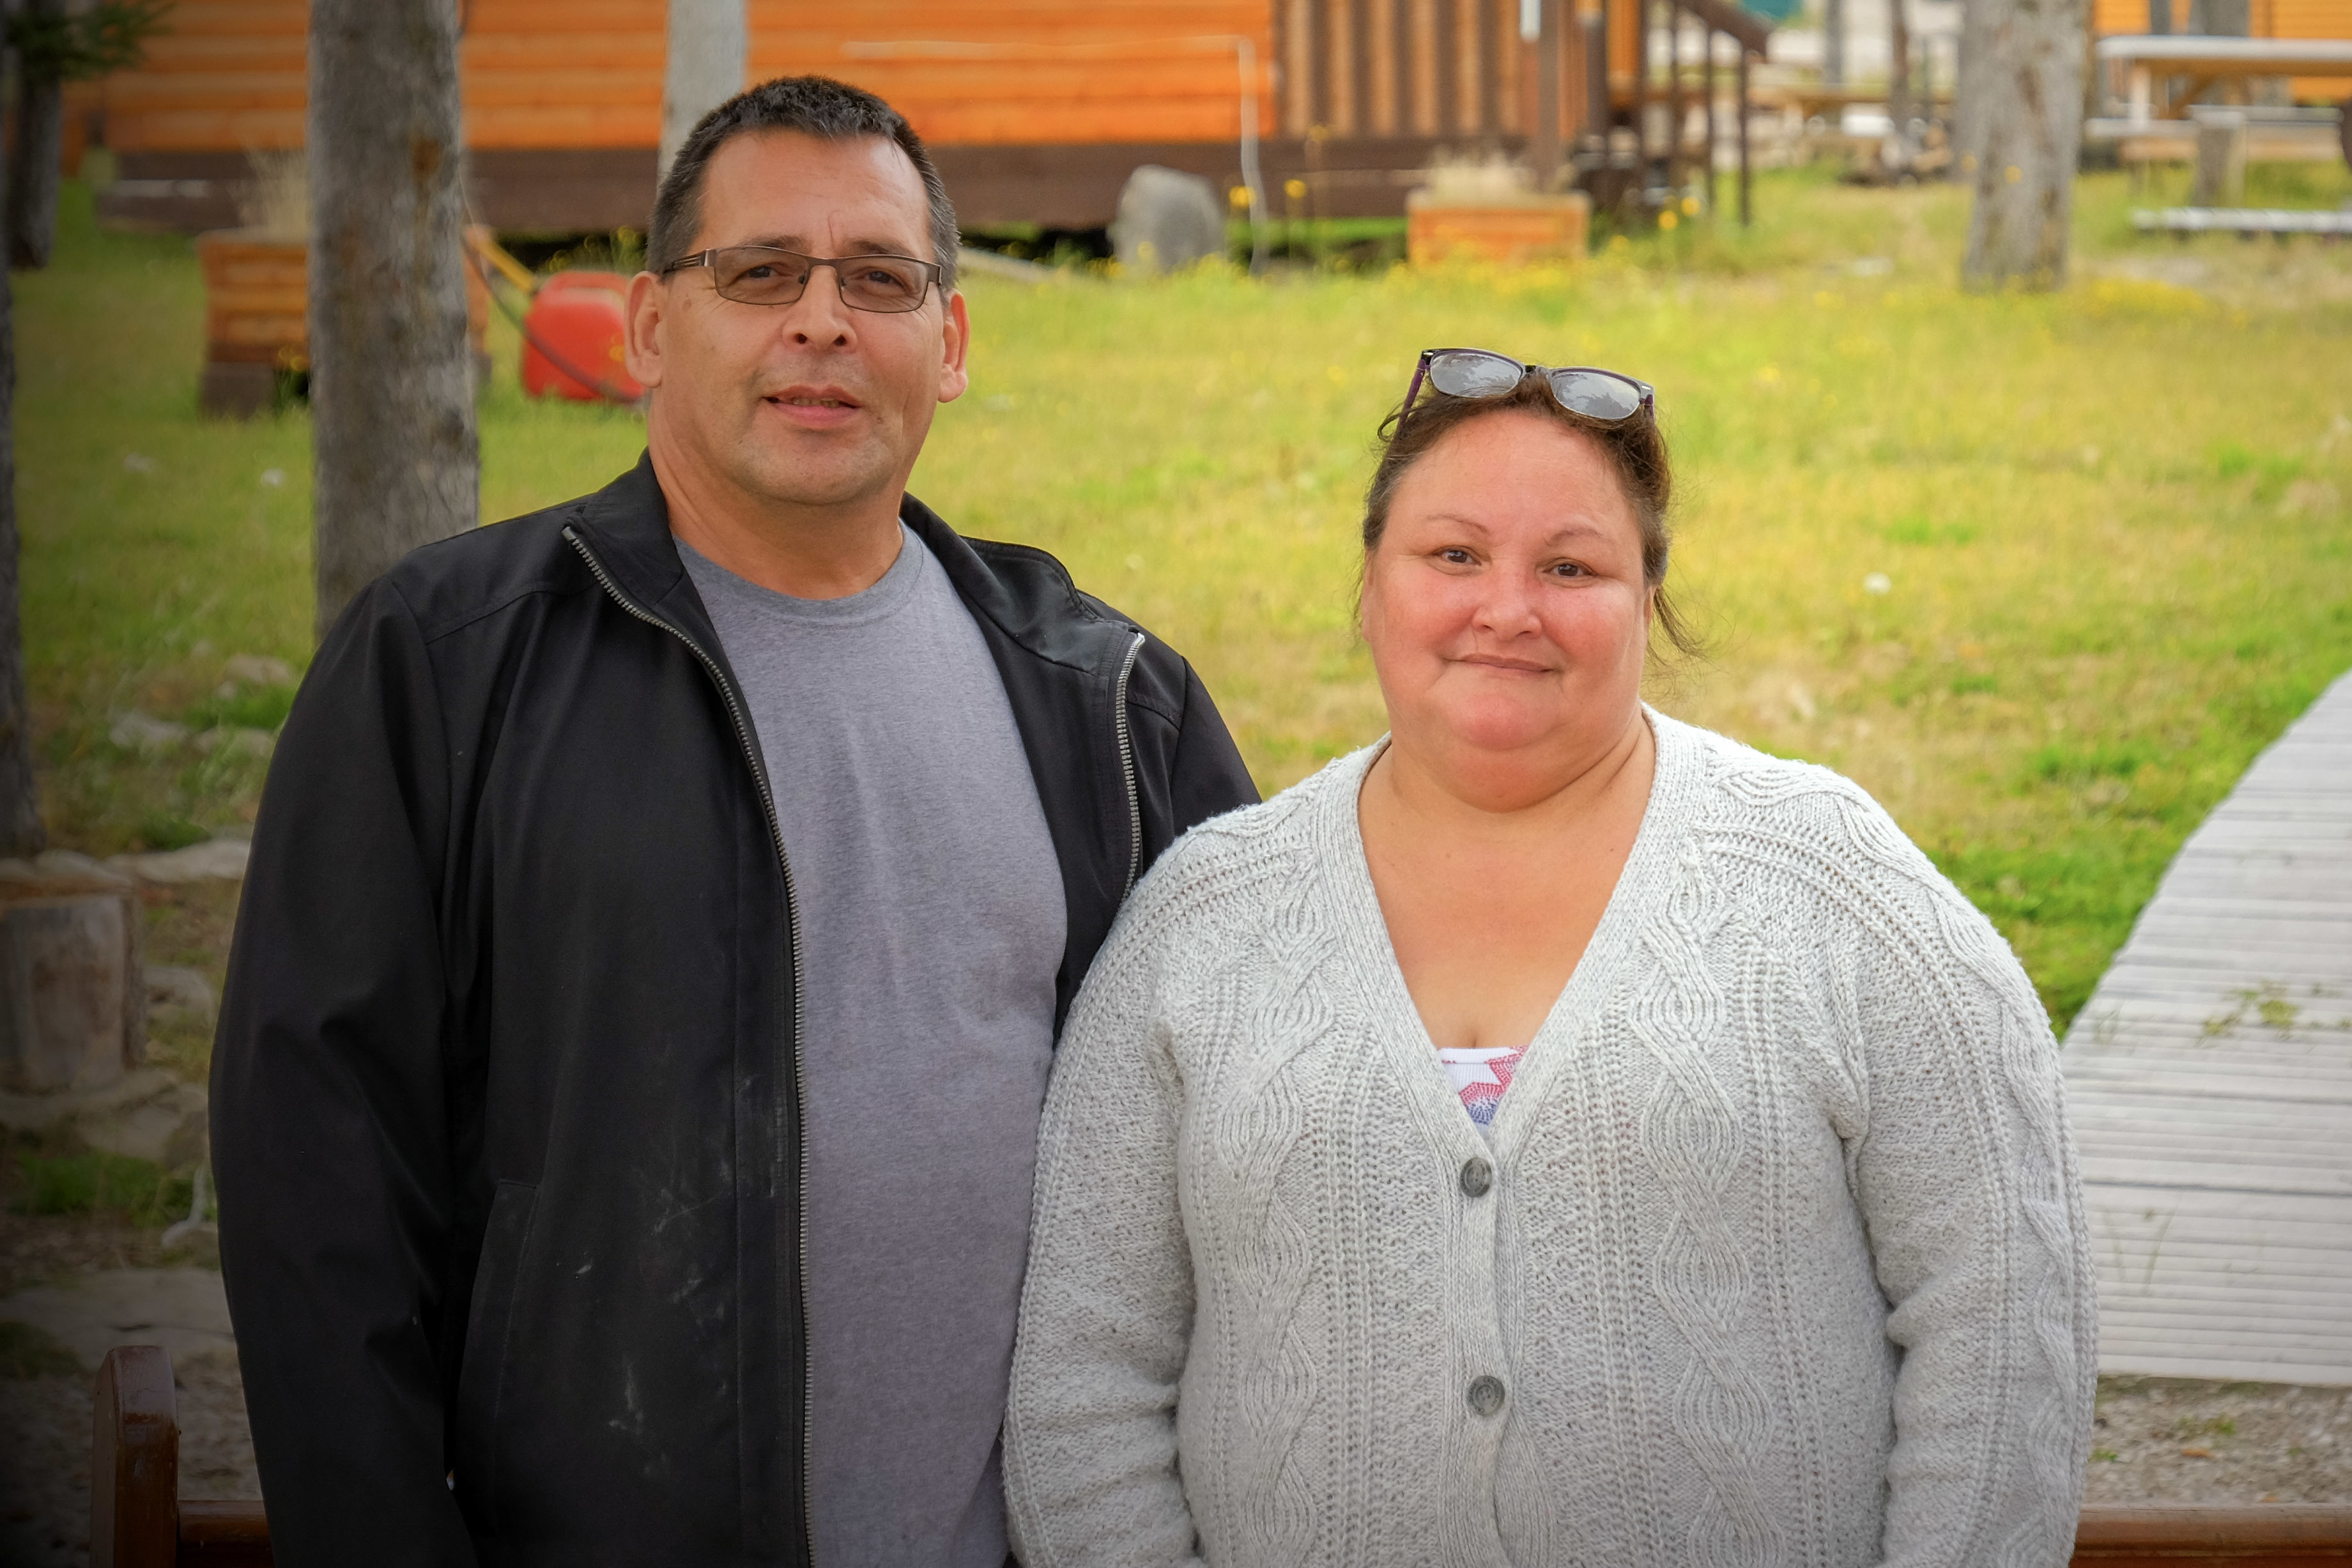 Ruby and Francois Prince are community facilitators from Fort St. James, B.C., who have been holding workshops in Fort Resolution for the past five years. (Graham Shishkov/CBC)